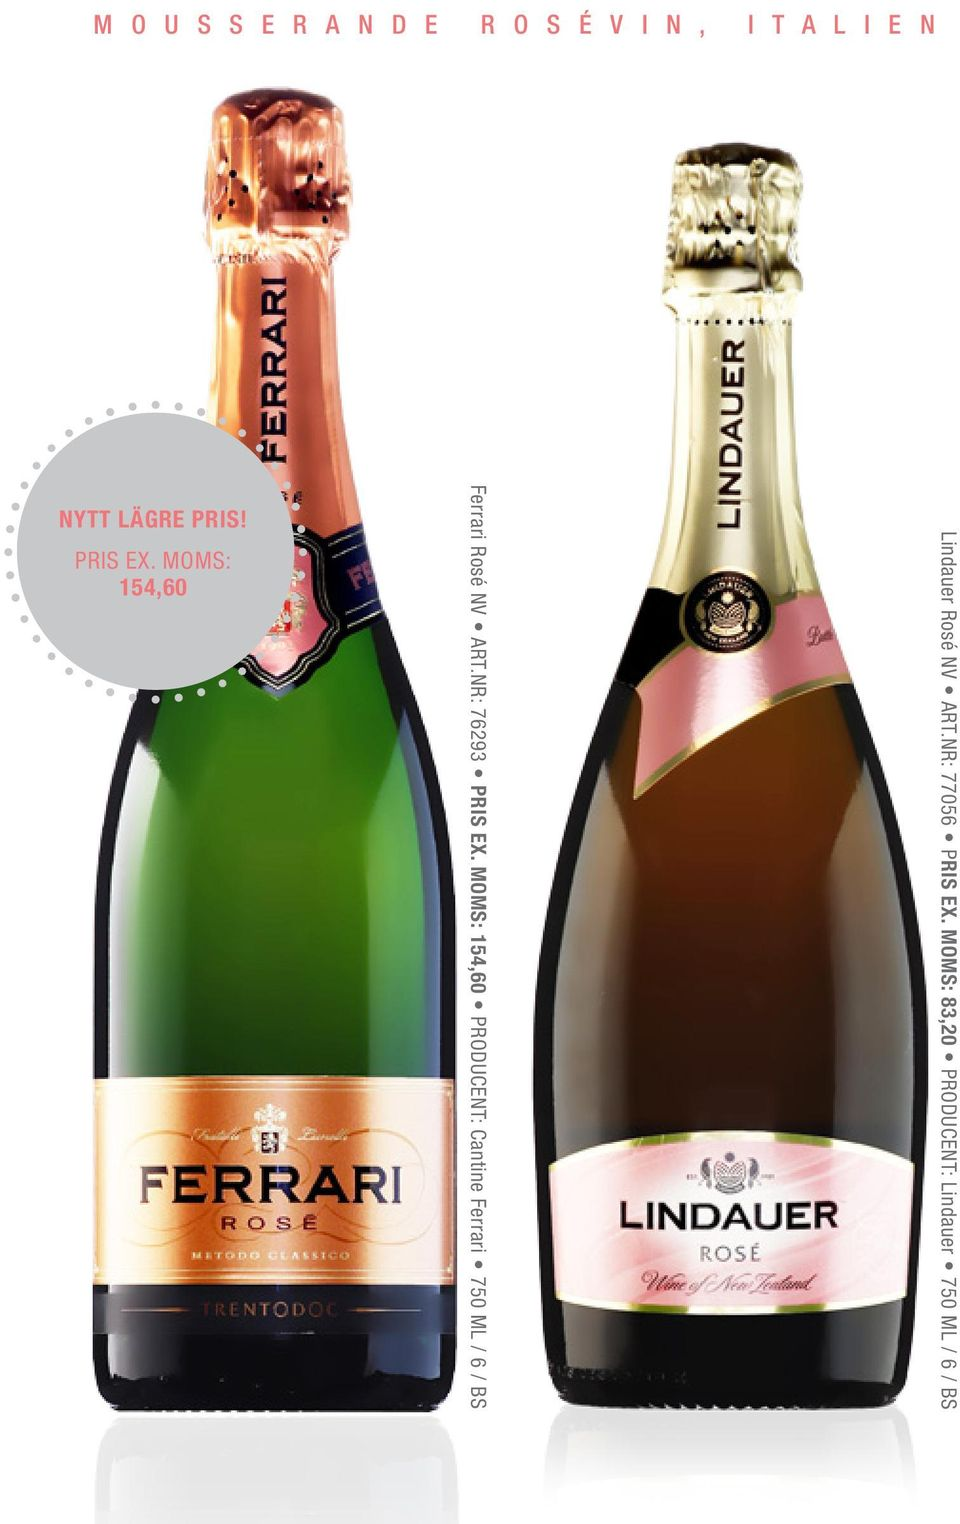 MOMS: 154,60 PRODUCENT: Cantine Ferrari 750 ML / 6 / BS Lindauer